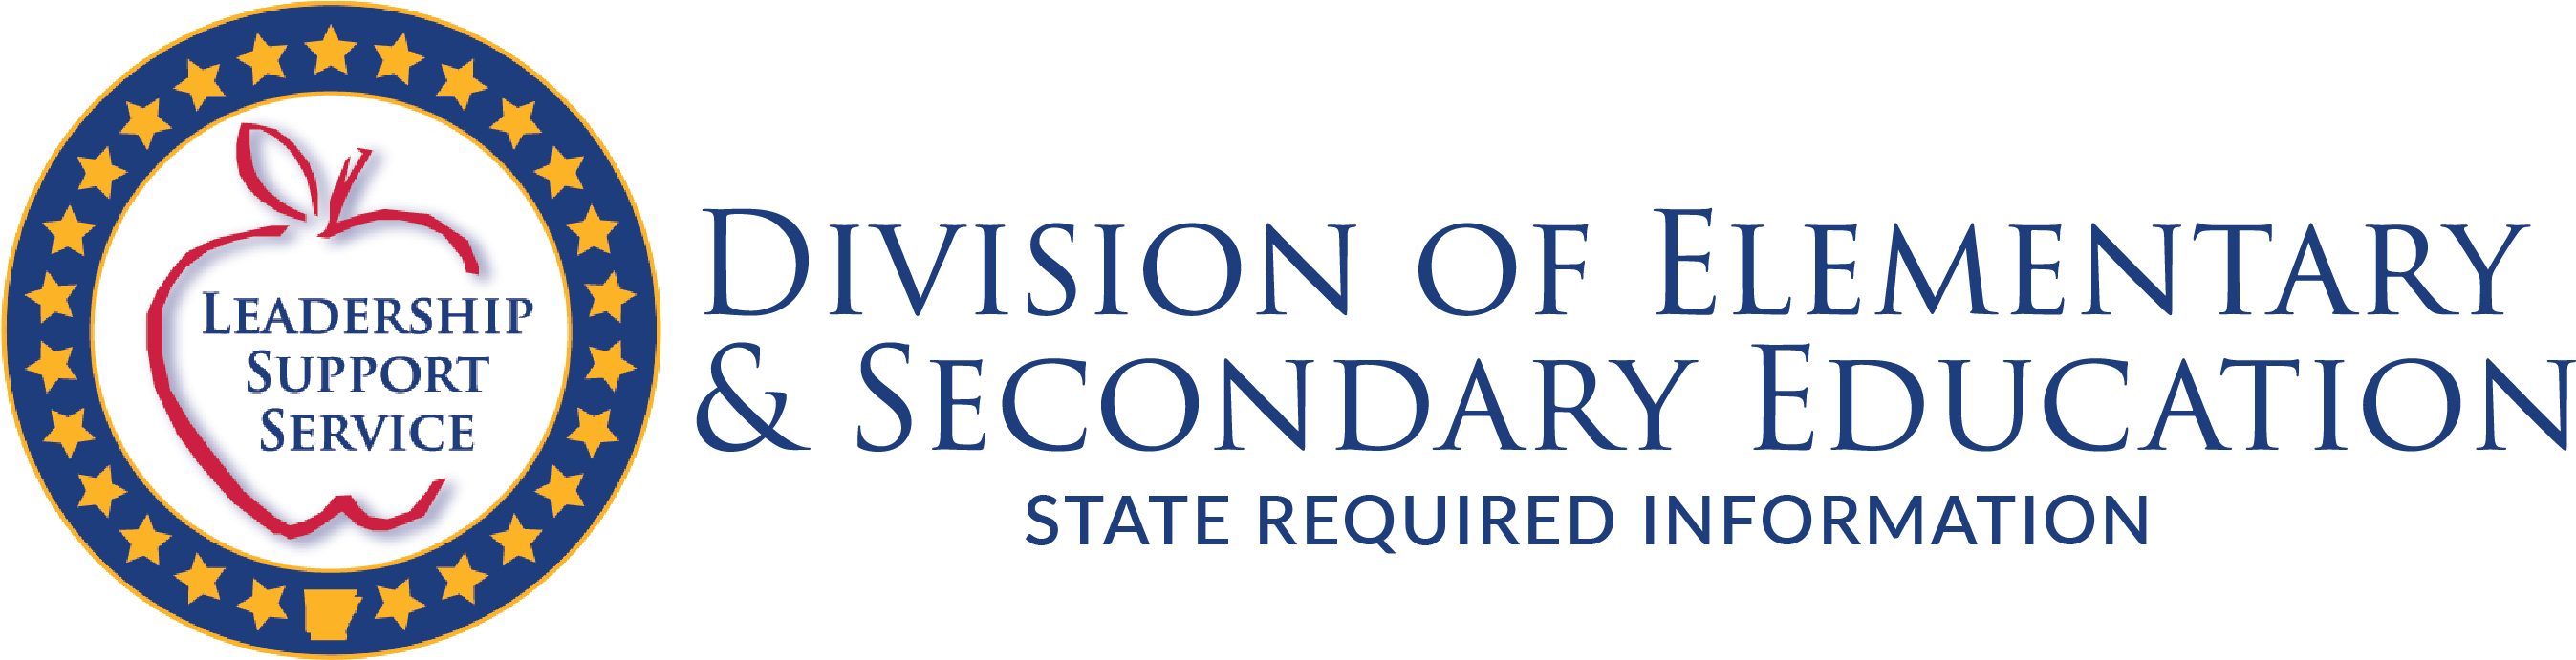 Arkansas Division of Elementary & Secondary Education